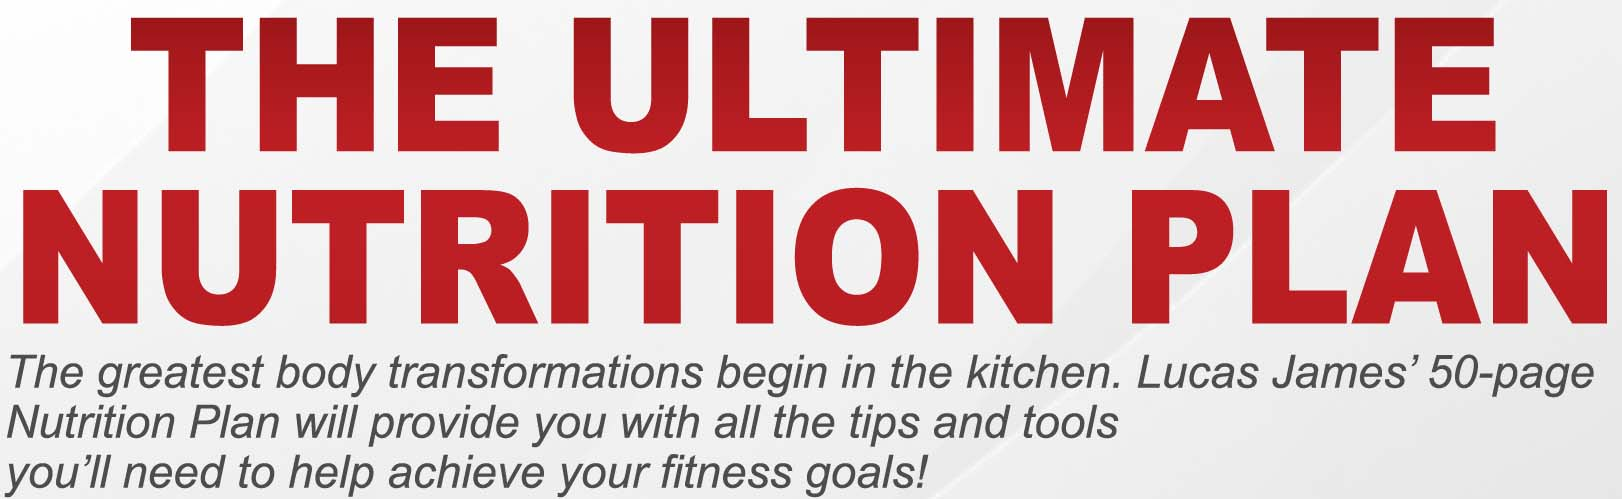 Ultimate Nutrition Plan By Leading Arizona Personal Trainer